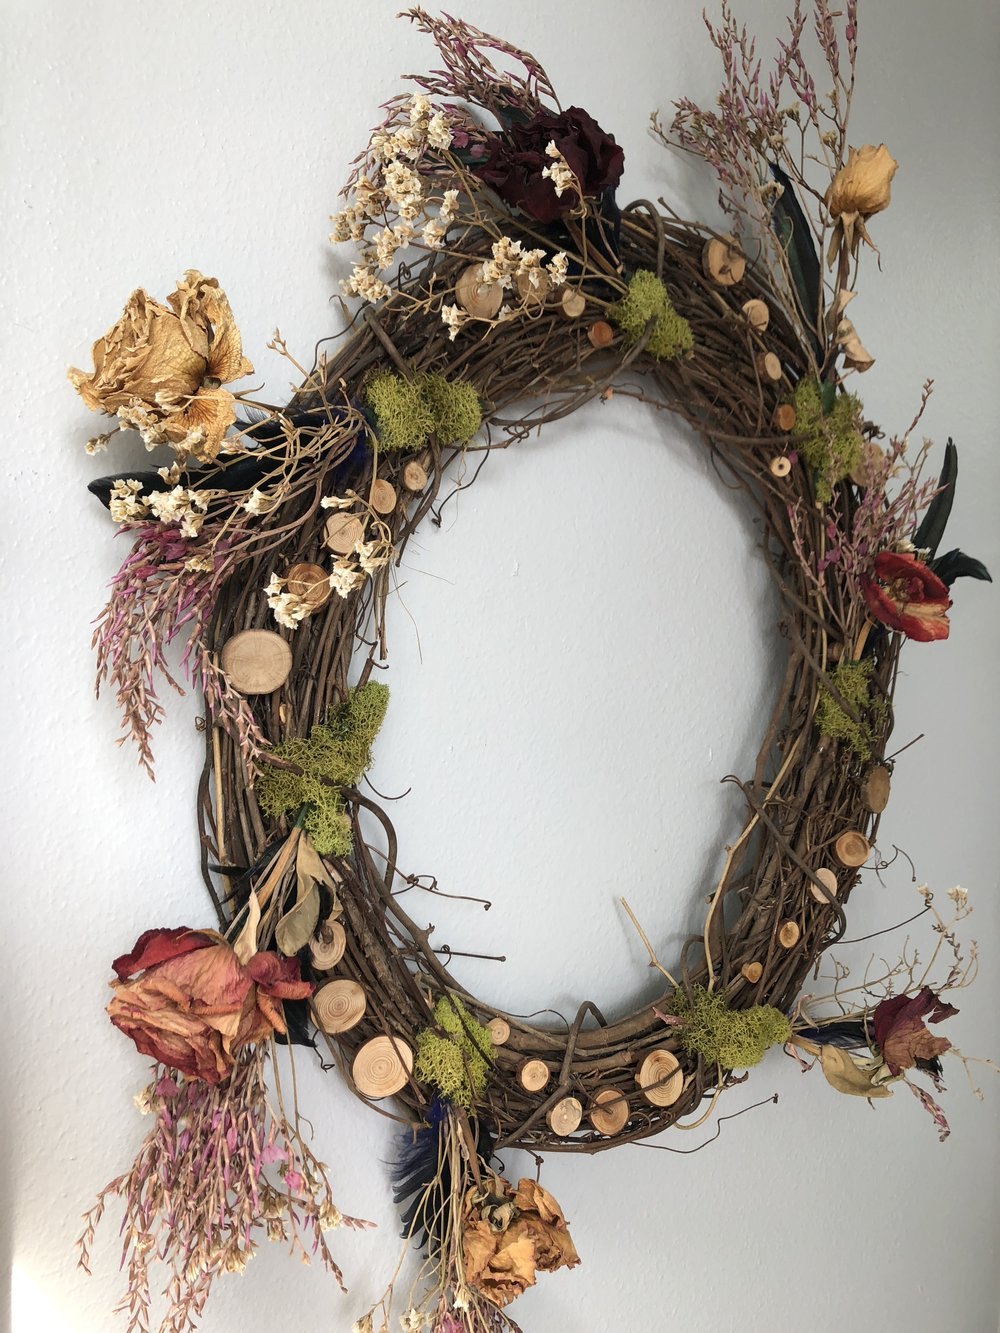 Growth is Circular by Melissa Hargus. Dried Flowers, Moss, Feathers and Wood.